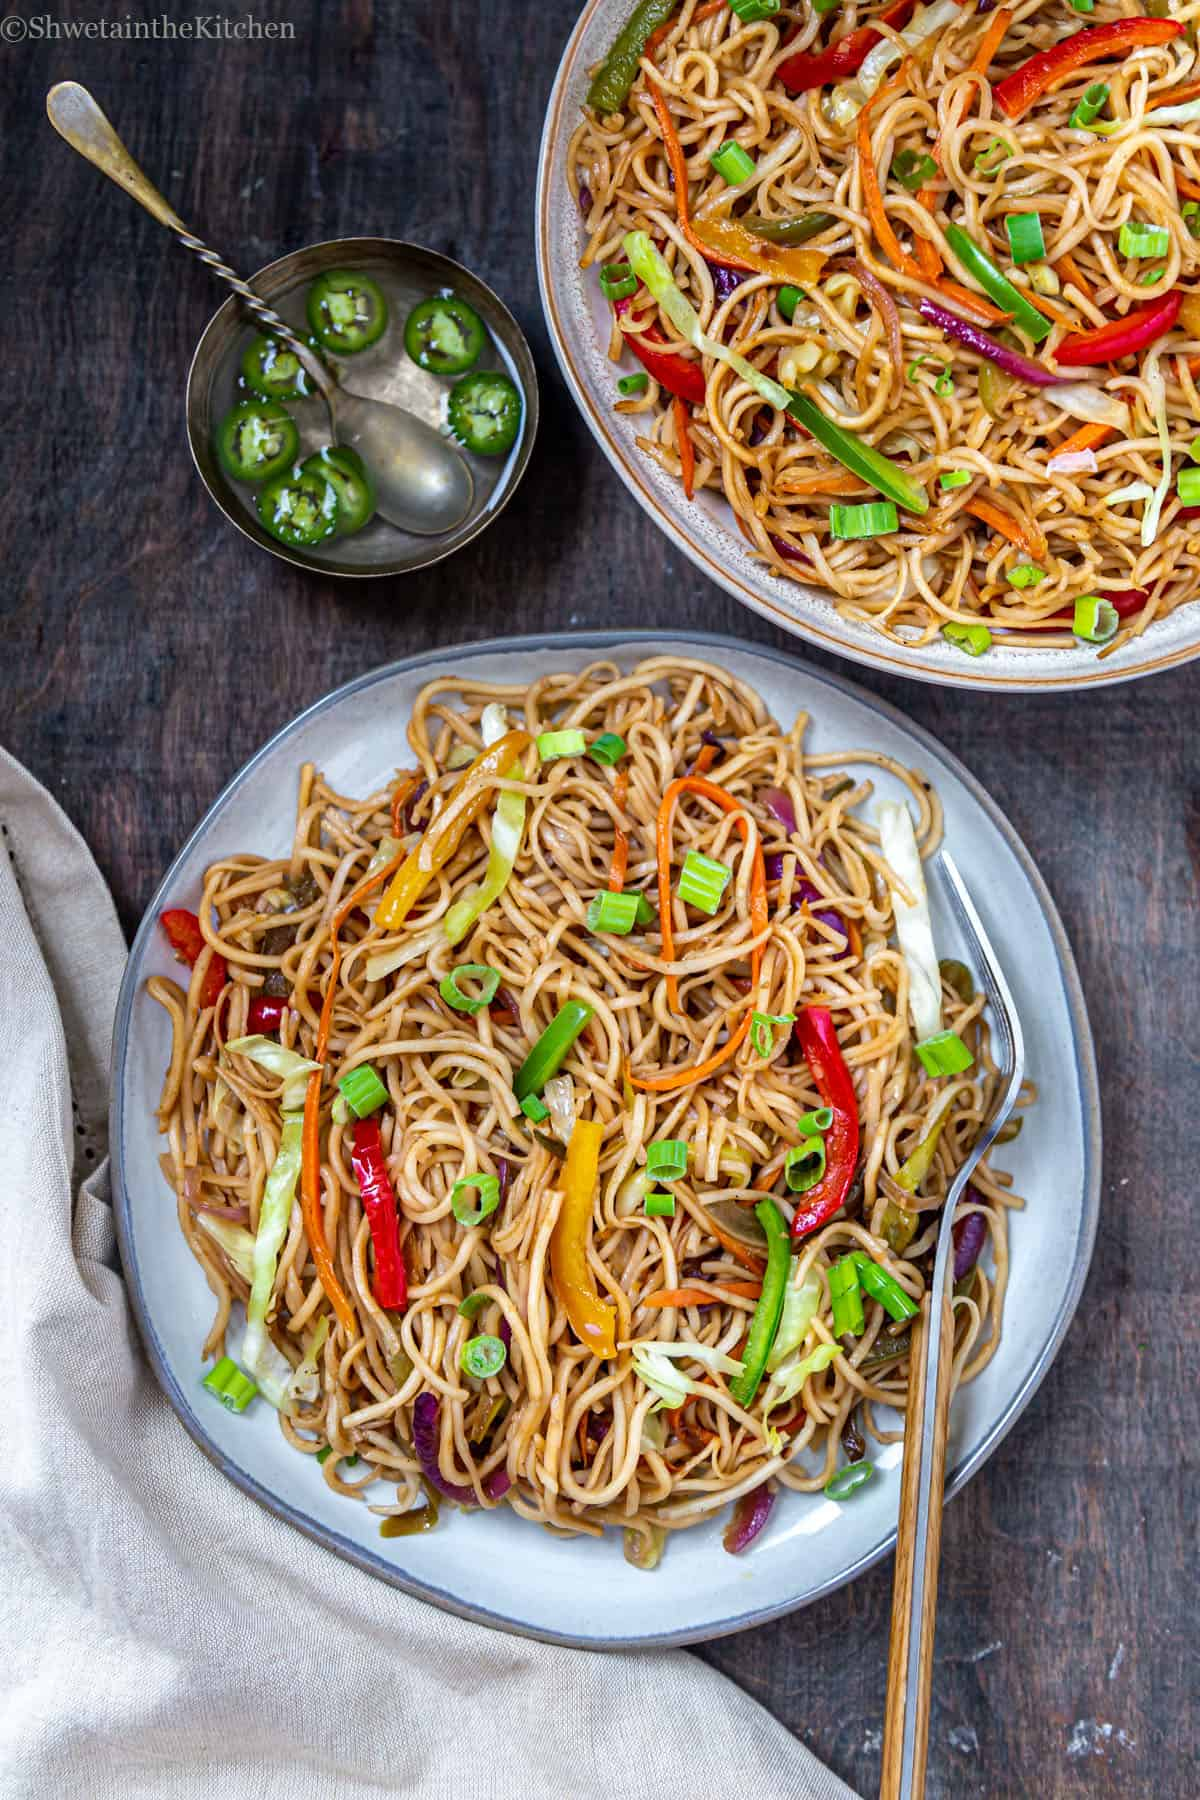 Top view of plate full of Indo chinese noodles with fork, bowl full of noodles and small bowl of vinegar and green chillies